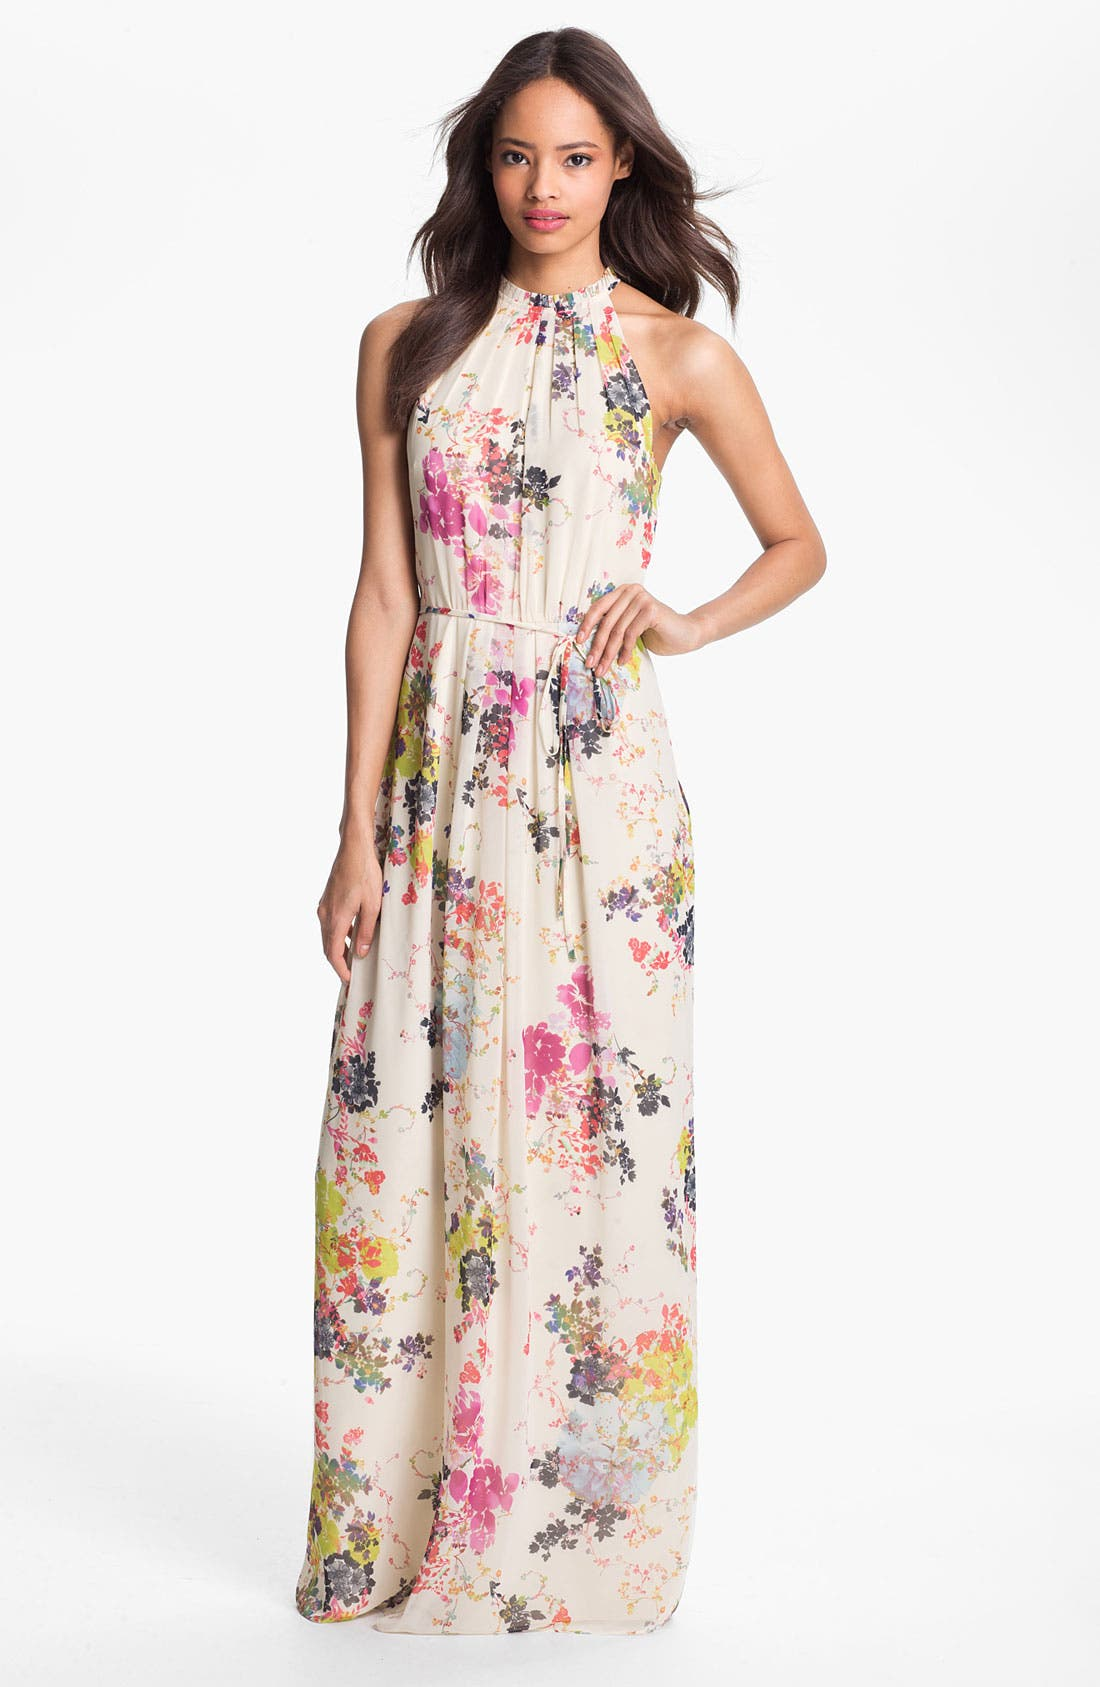 Alternate Image 1 Selected - Ted Baker London 'Summer Bloom' Print Maxi Dress (Online Only)